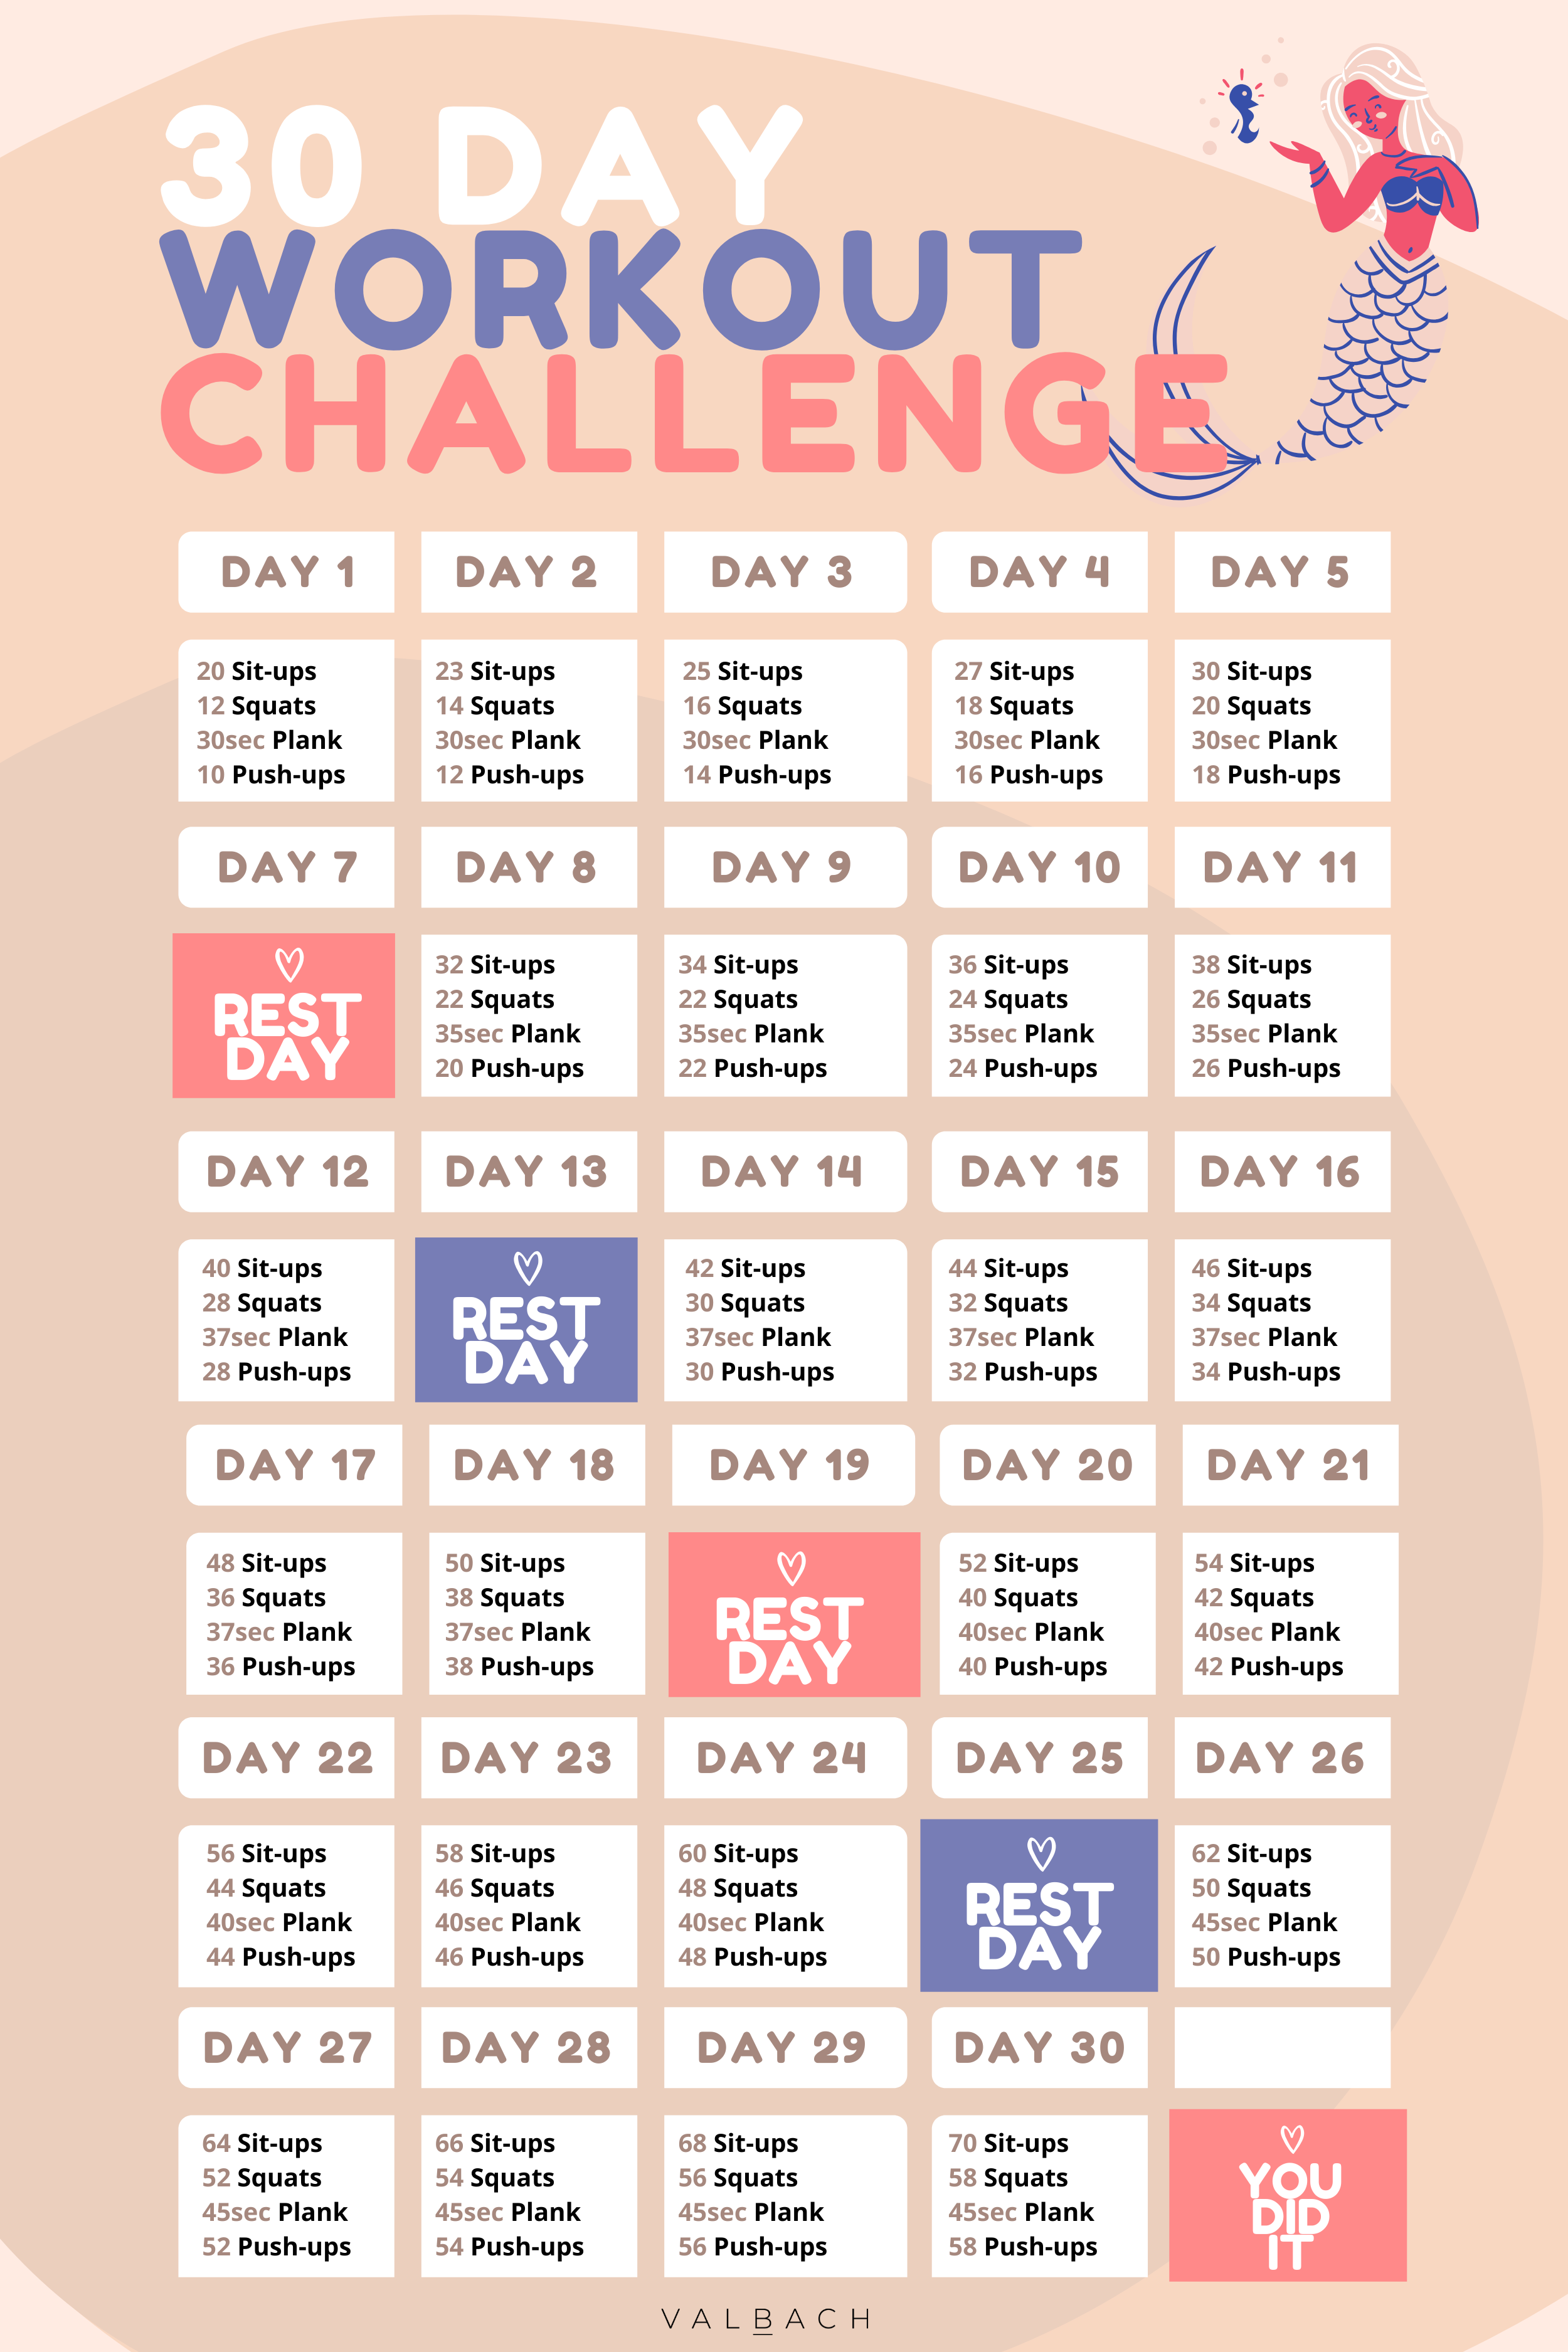 30 Day Workout Challenge For Women At Home In 2020 Beginner Workout At Home 30 Day Workout Challenge Workout Challenge